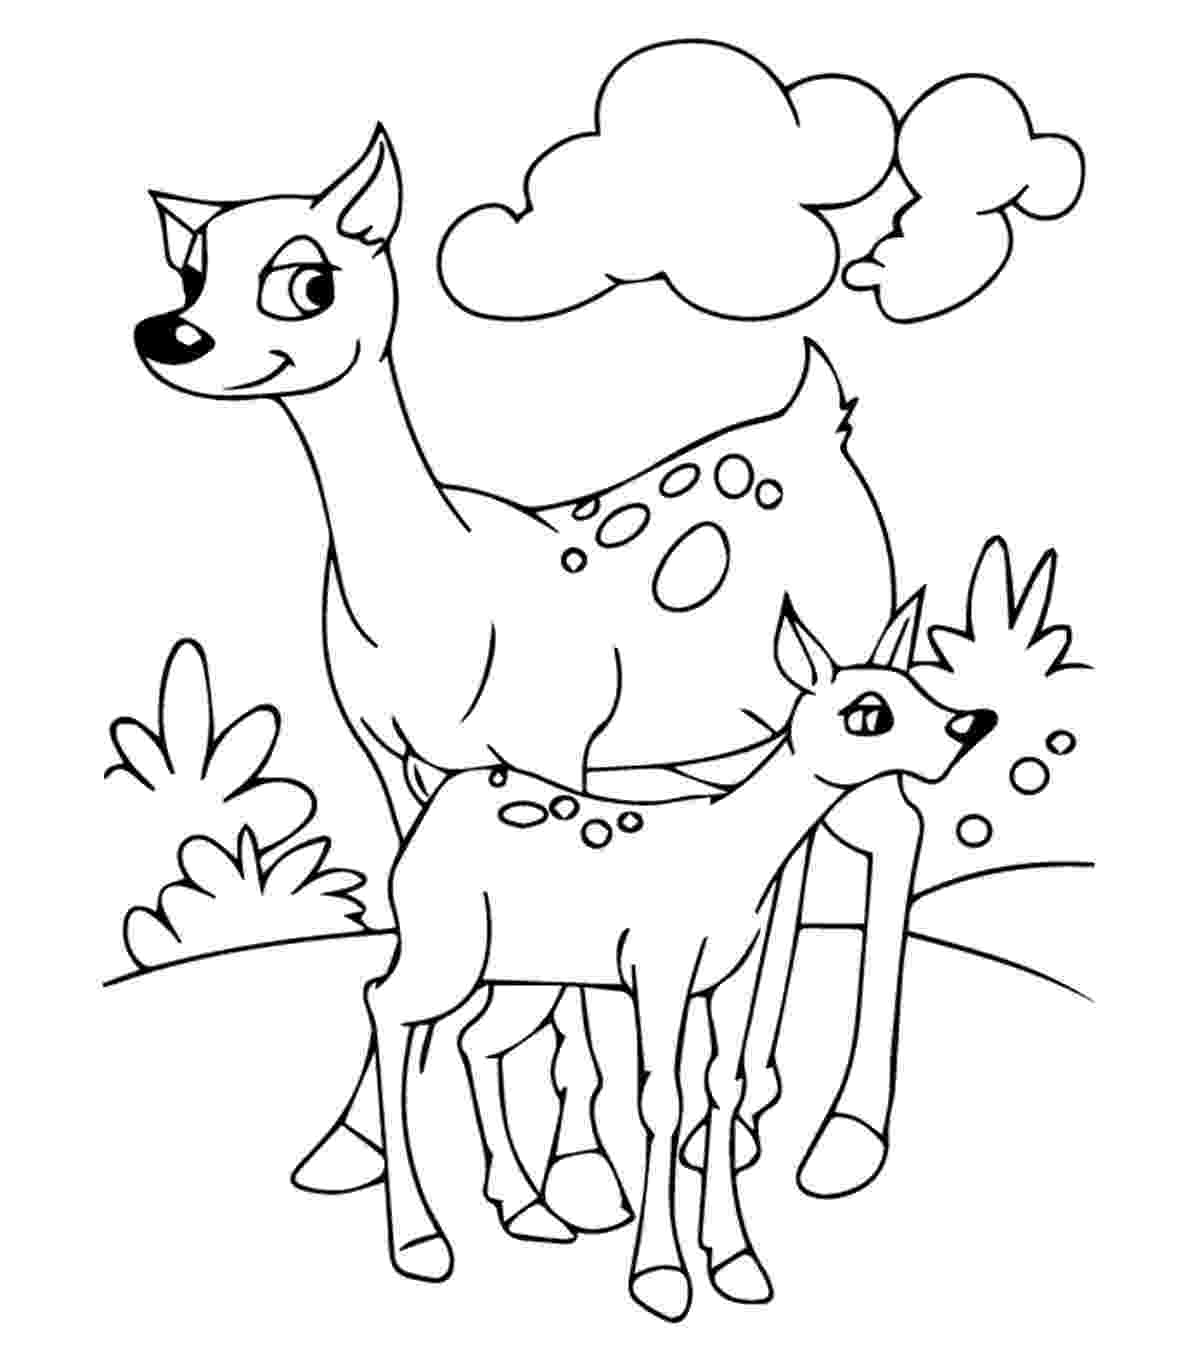 animal coloring sheets animal coloring pages momjunction coloring sheets animal